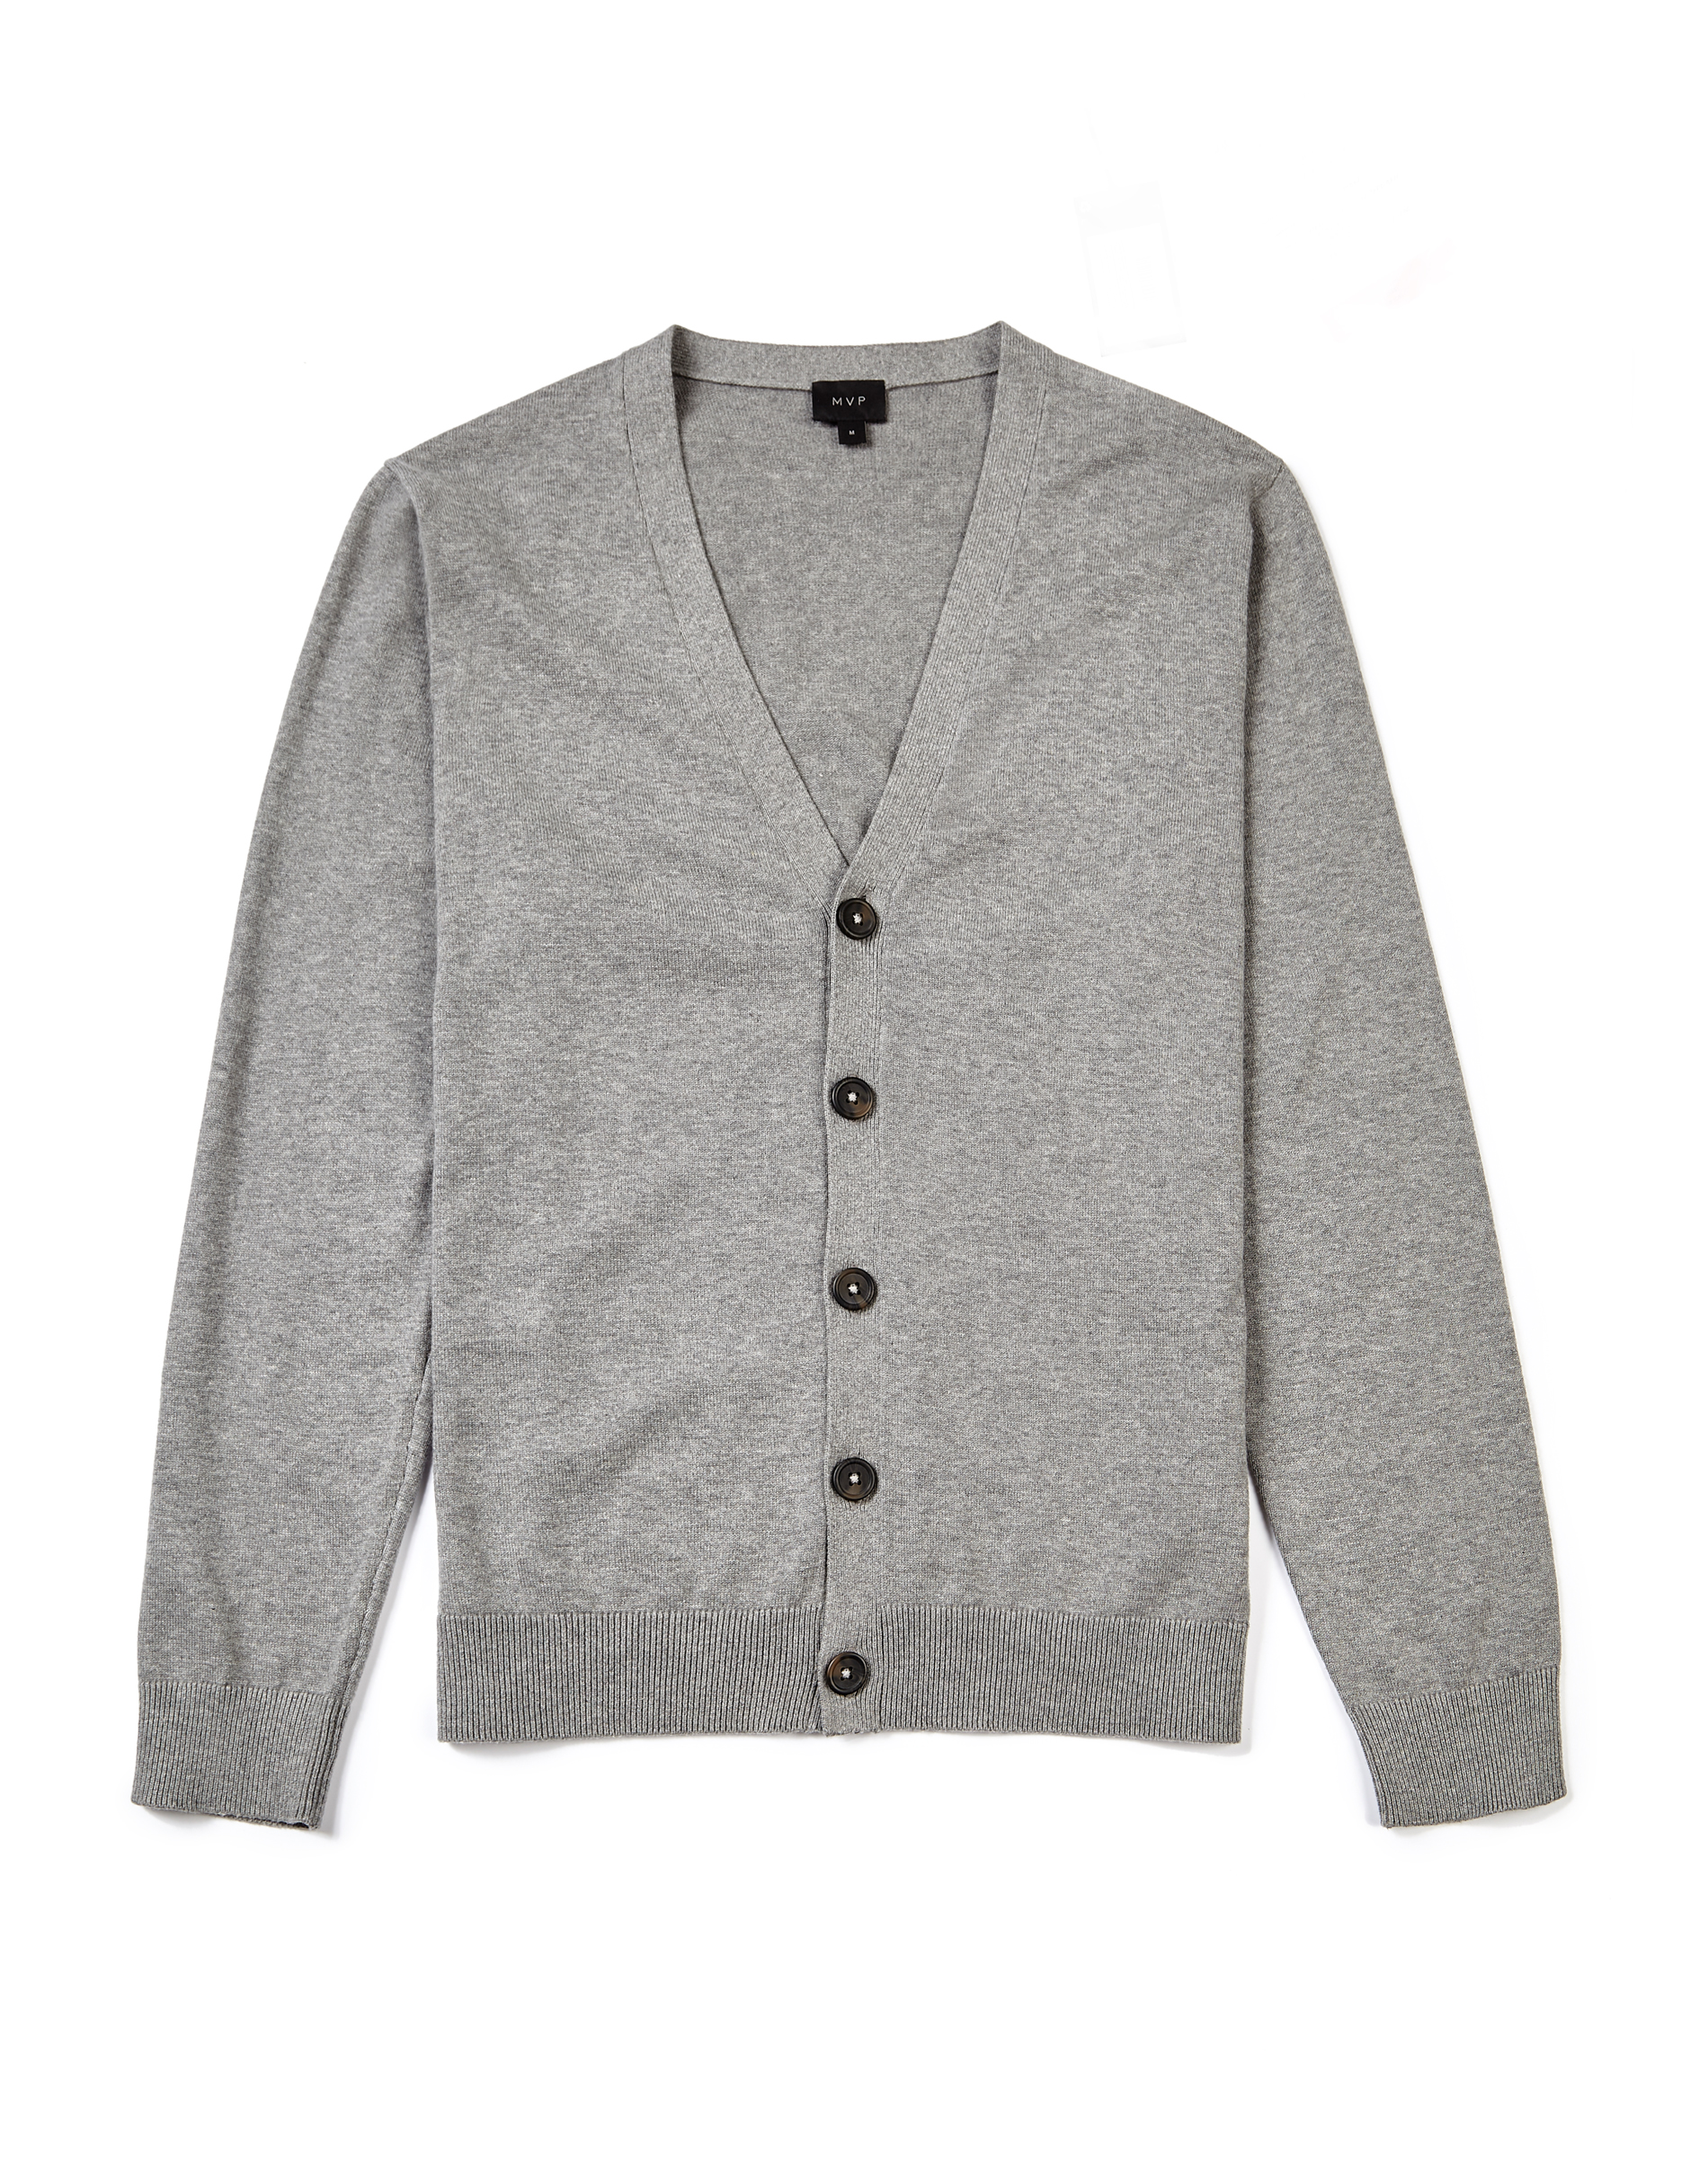 MVP MID GREY MELANGE Clark Cotton Cardigan